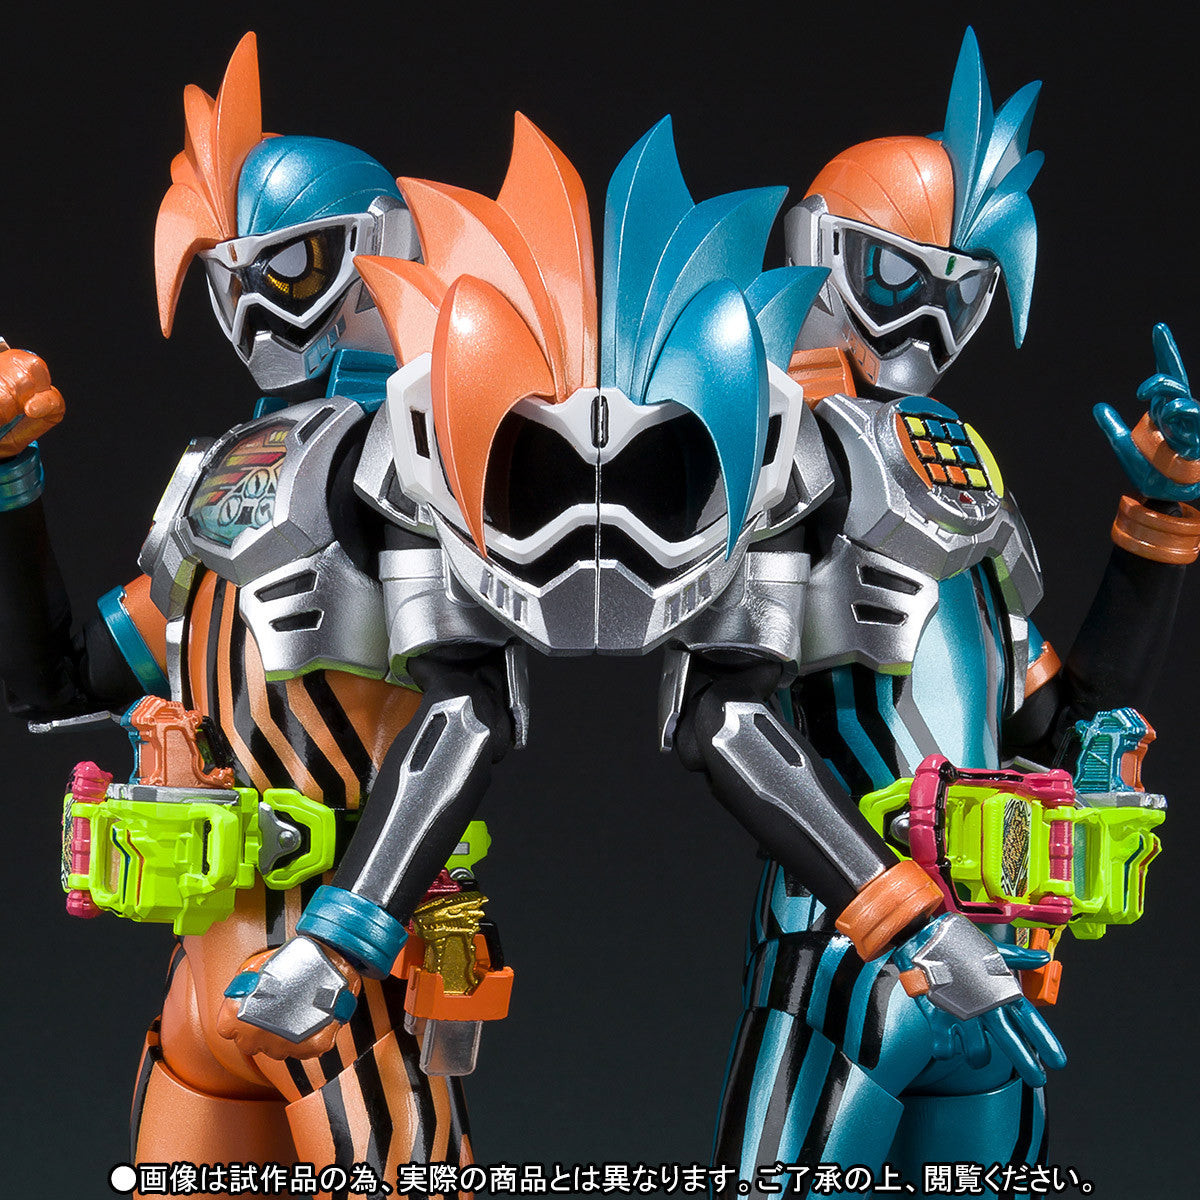 S.H.Figuarts - Kamen Masked Rider - Ex-Aid Double Action Gamer Level XX LRSet (TamashiiWeb Exclusive)